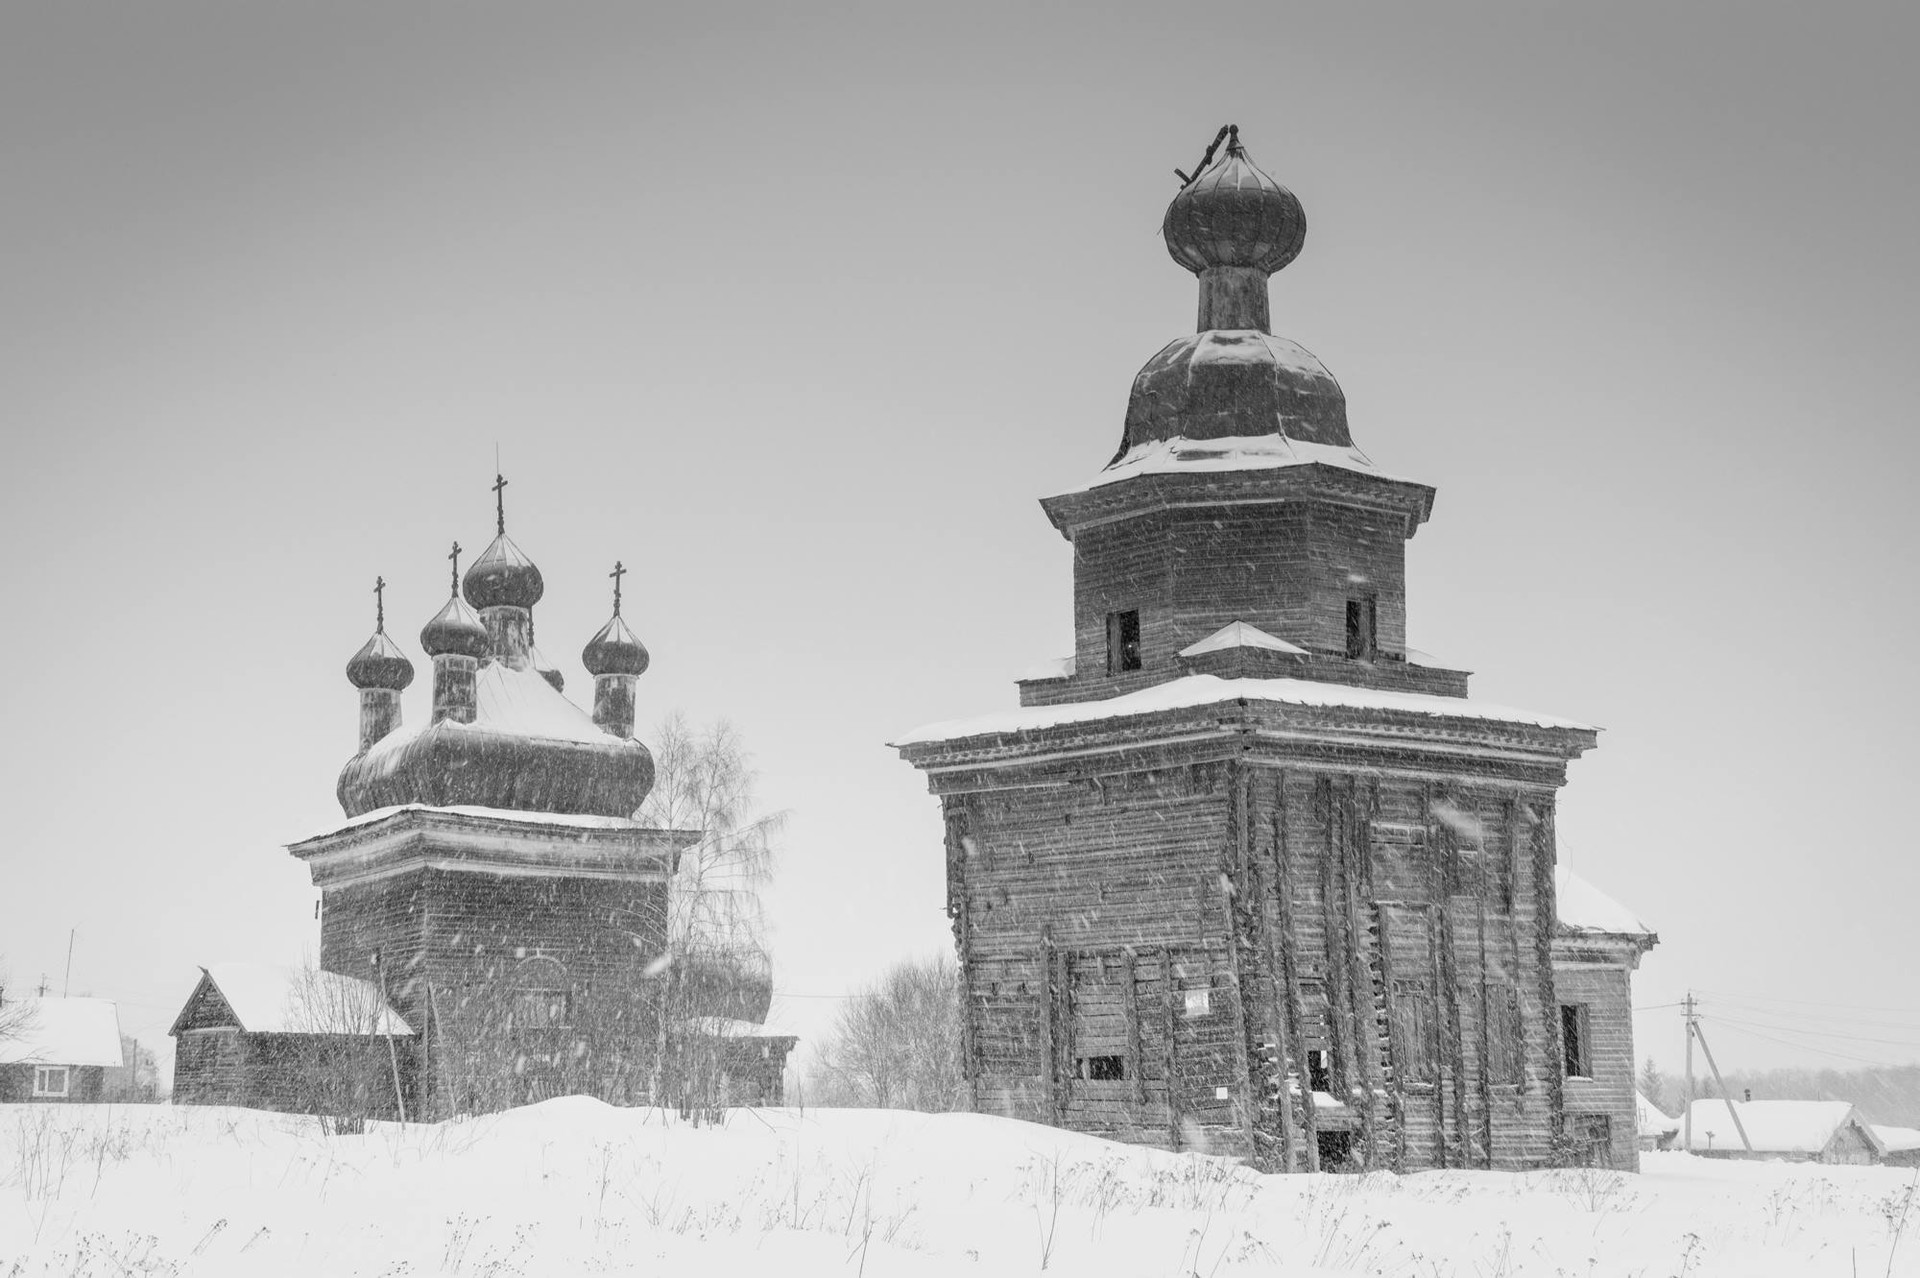 The monasteries in Shelokhovskaya village.